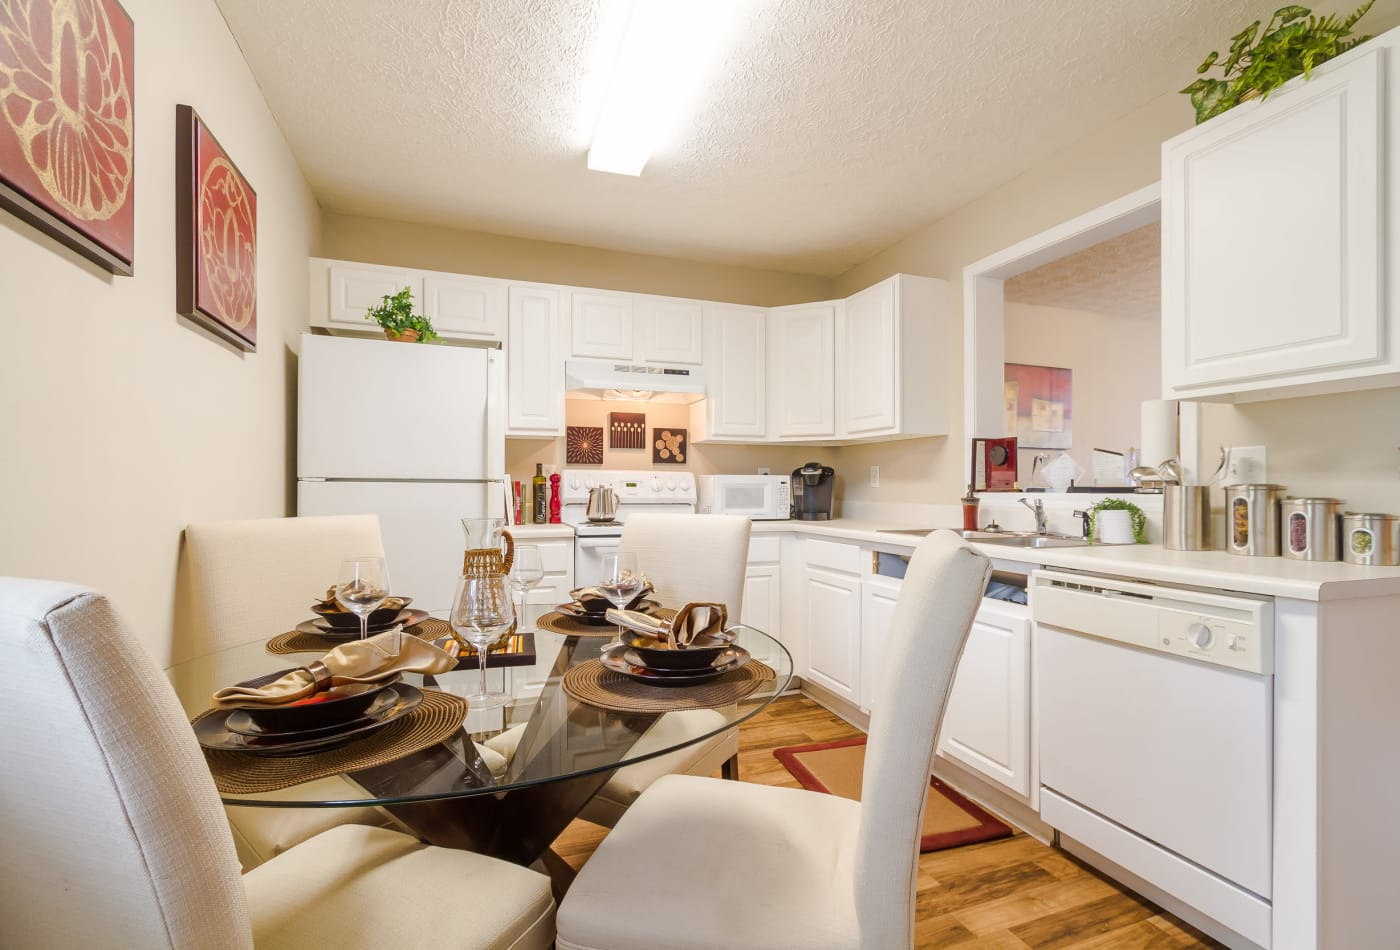 Dining room and kitchen at Mount Olive Townhomes in Commerce